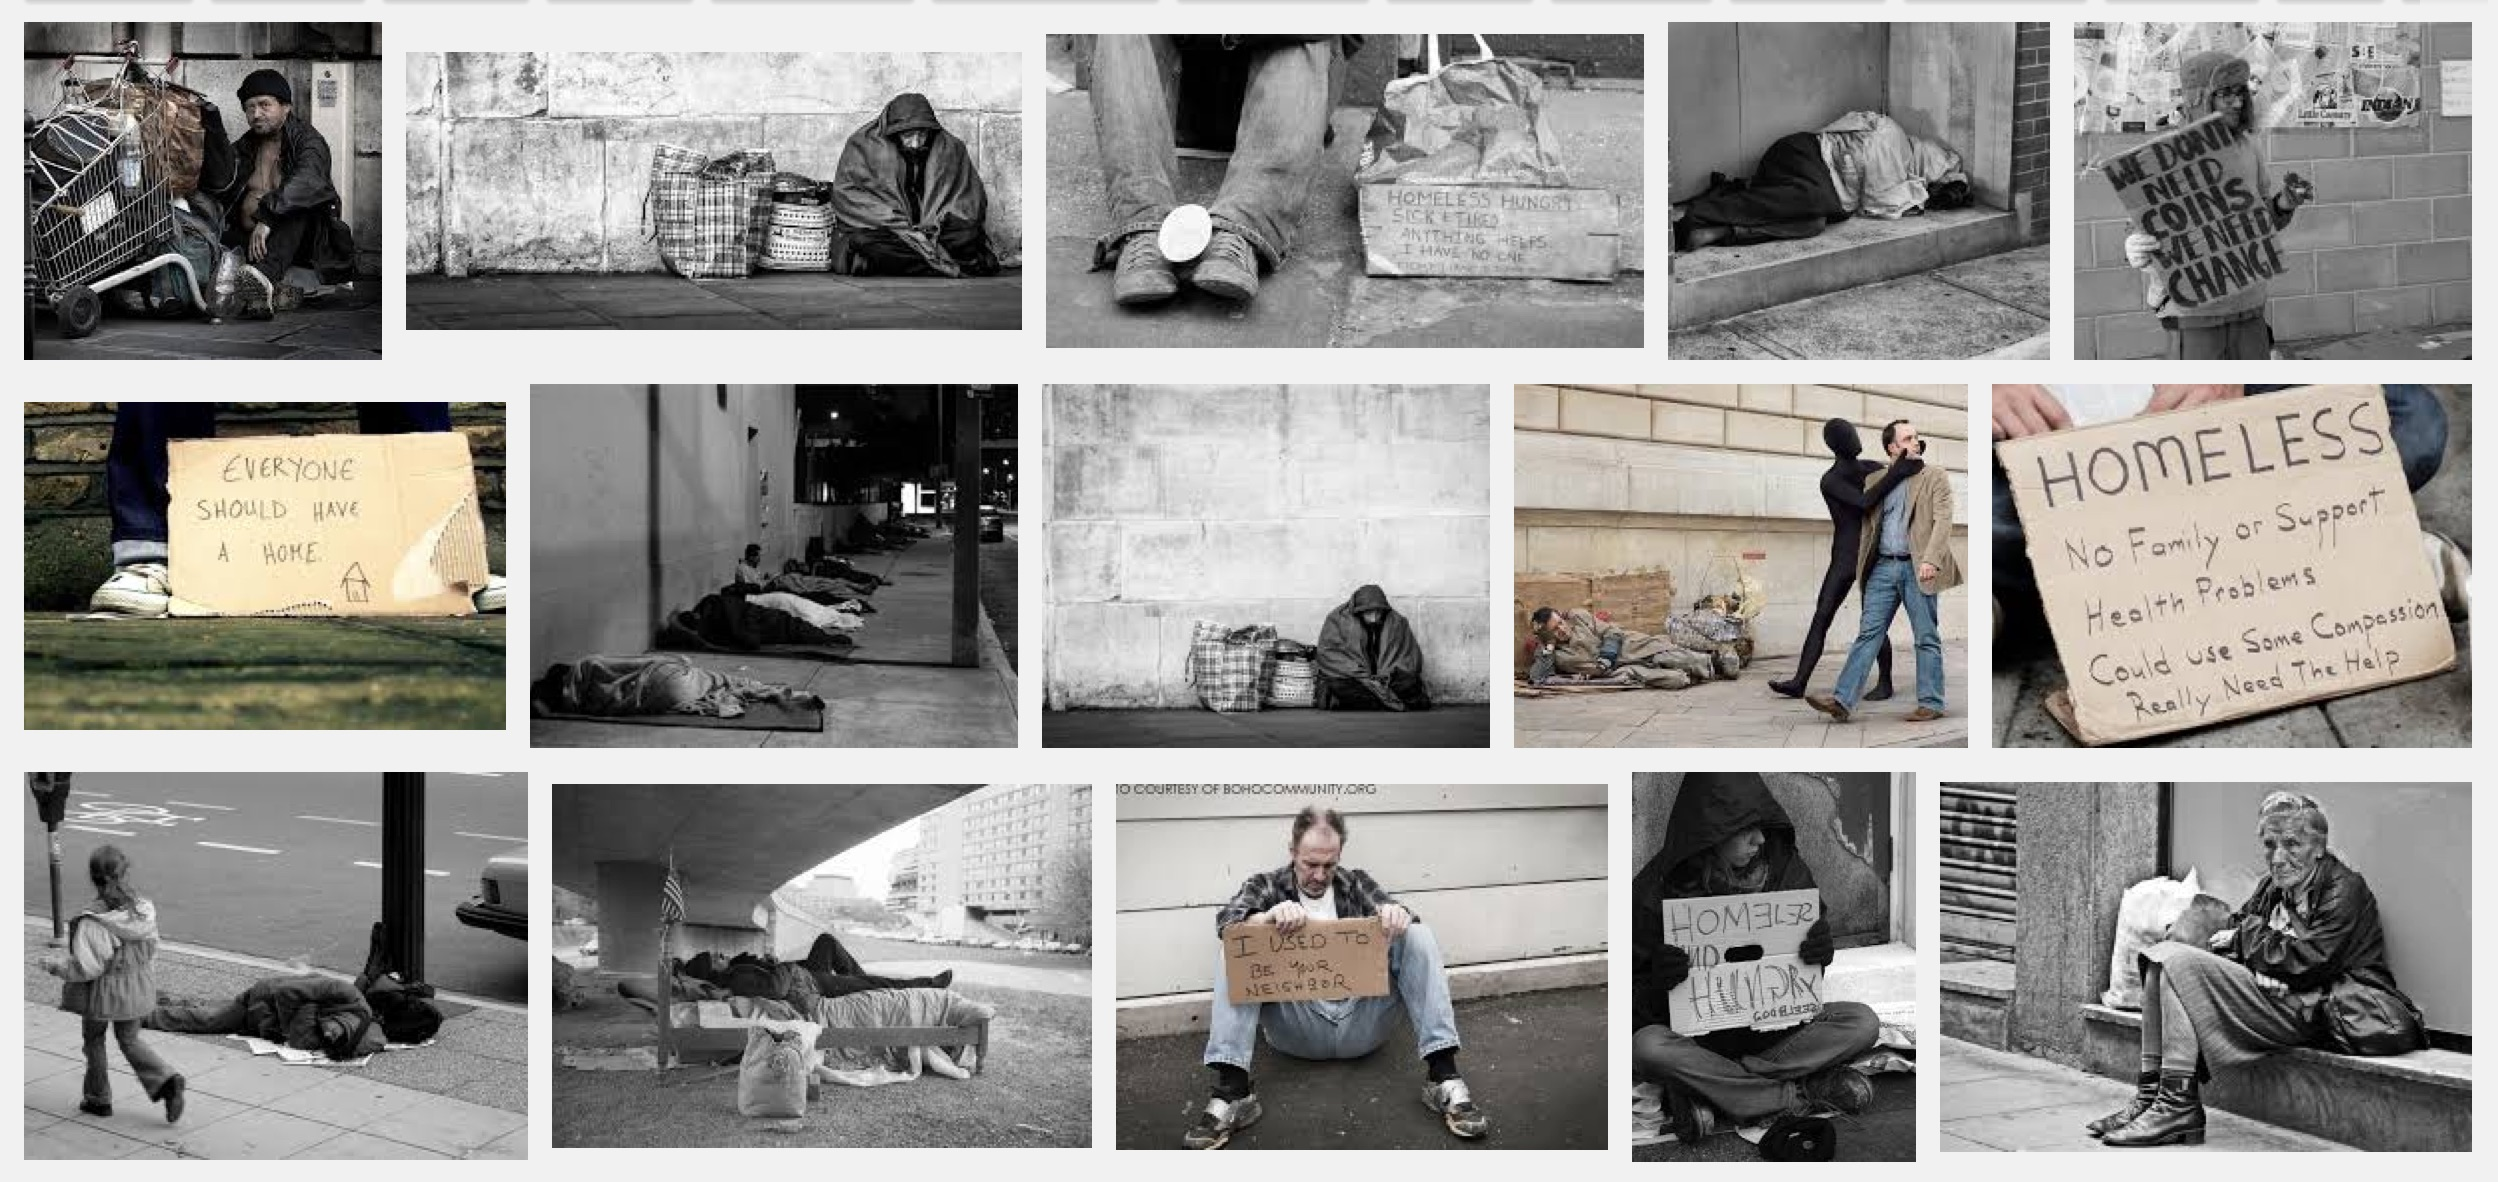 google-search-homelessness